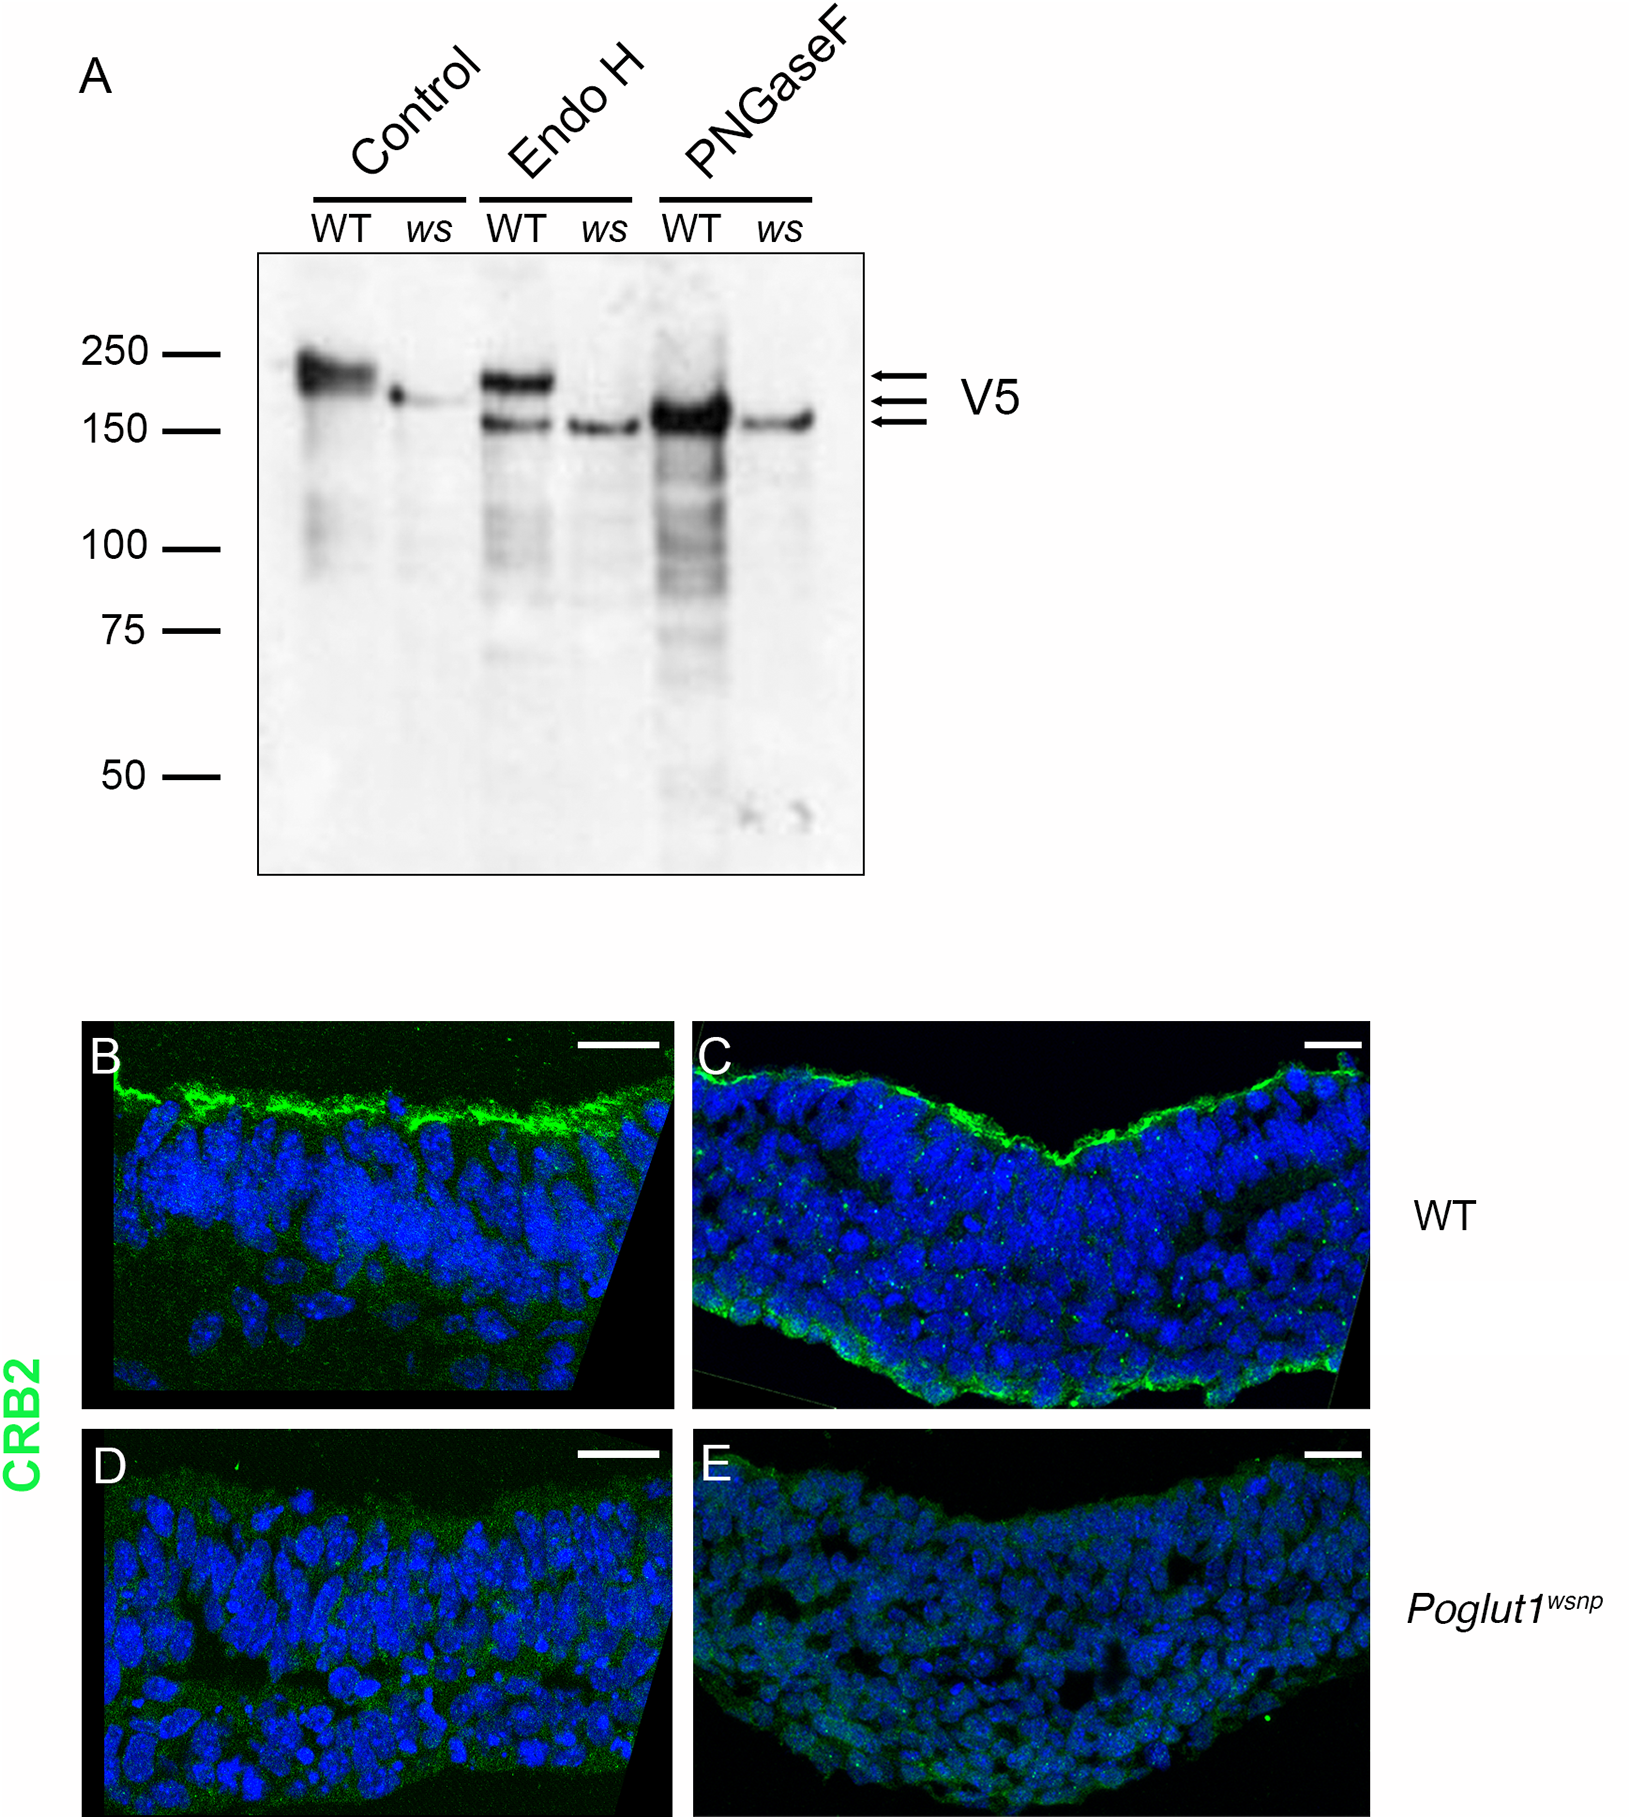 POGLUT1 is required for cell-surface localization of CRUMBS2.